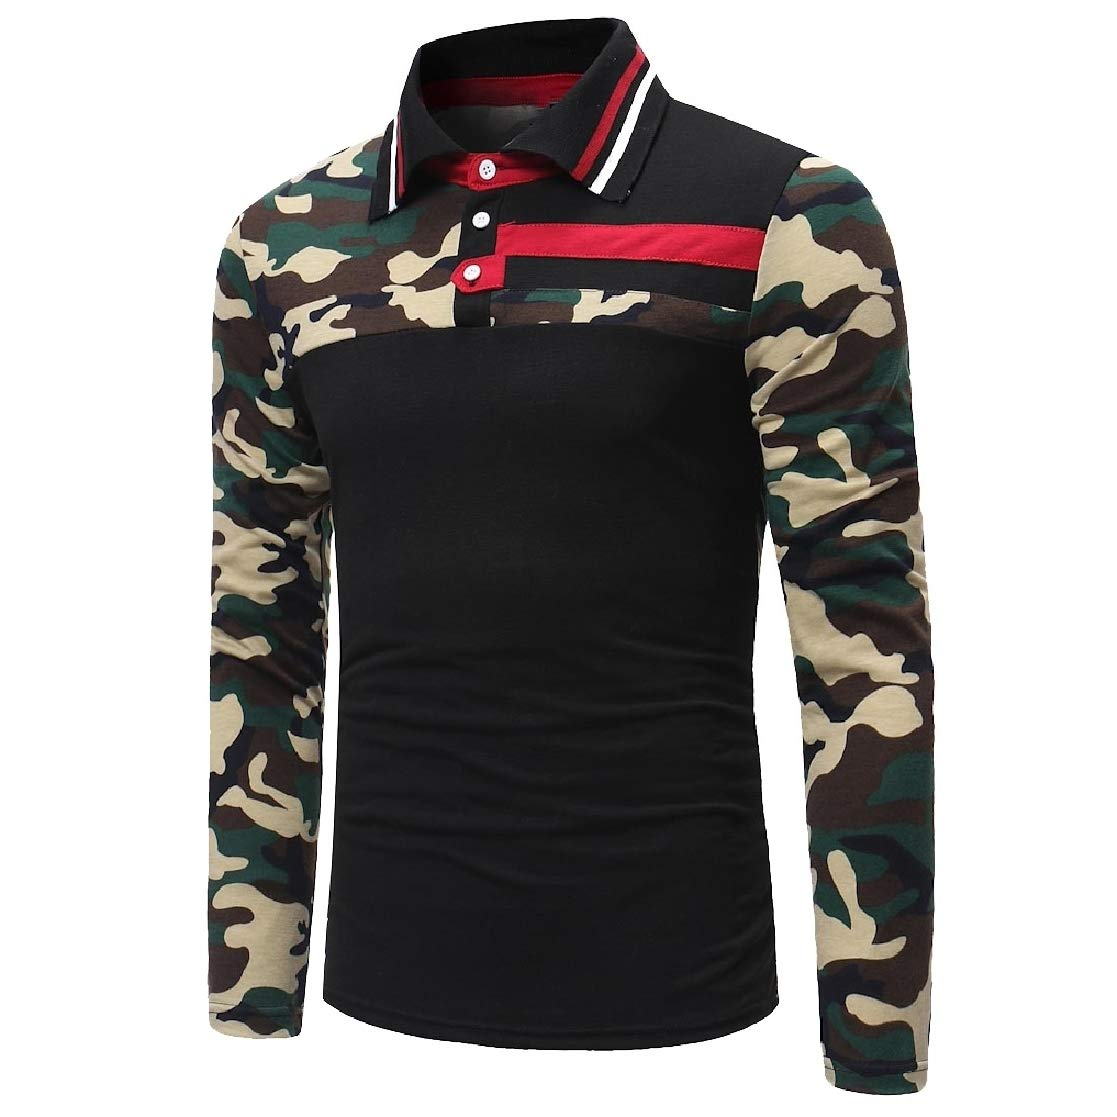 YUNY Men Casual Polo-Collar Camouflage Stitch Top T-Shirt Blouse Black S